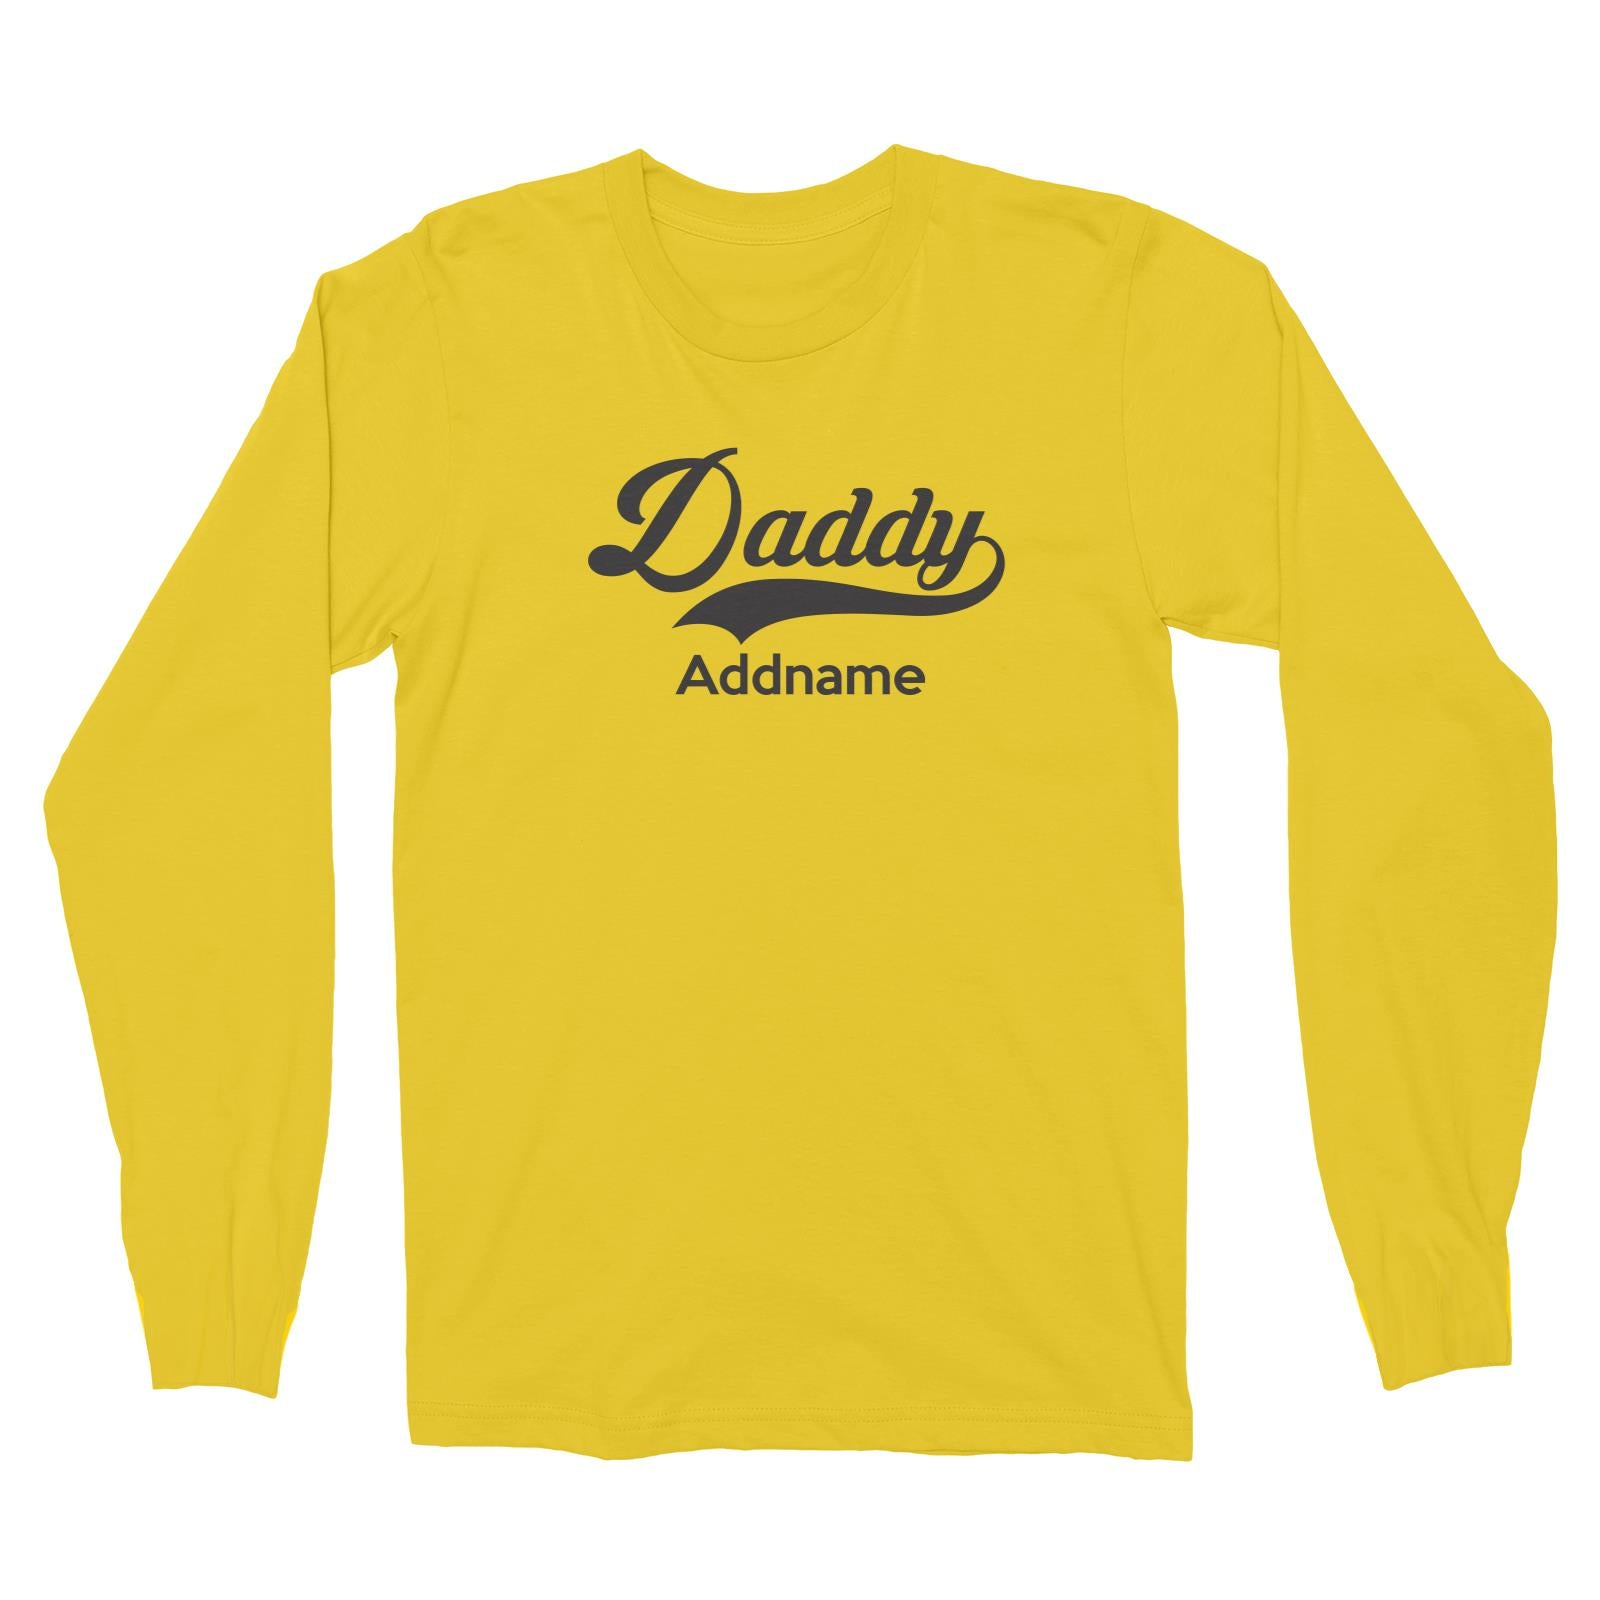 Retro Daddy Addname Long Sleeve Unisex T-Shirt  Matching Family Personalizable Designs